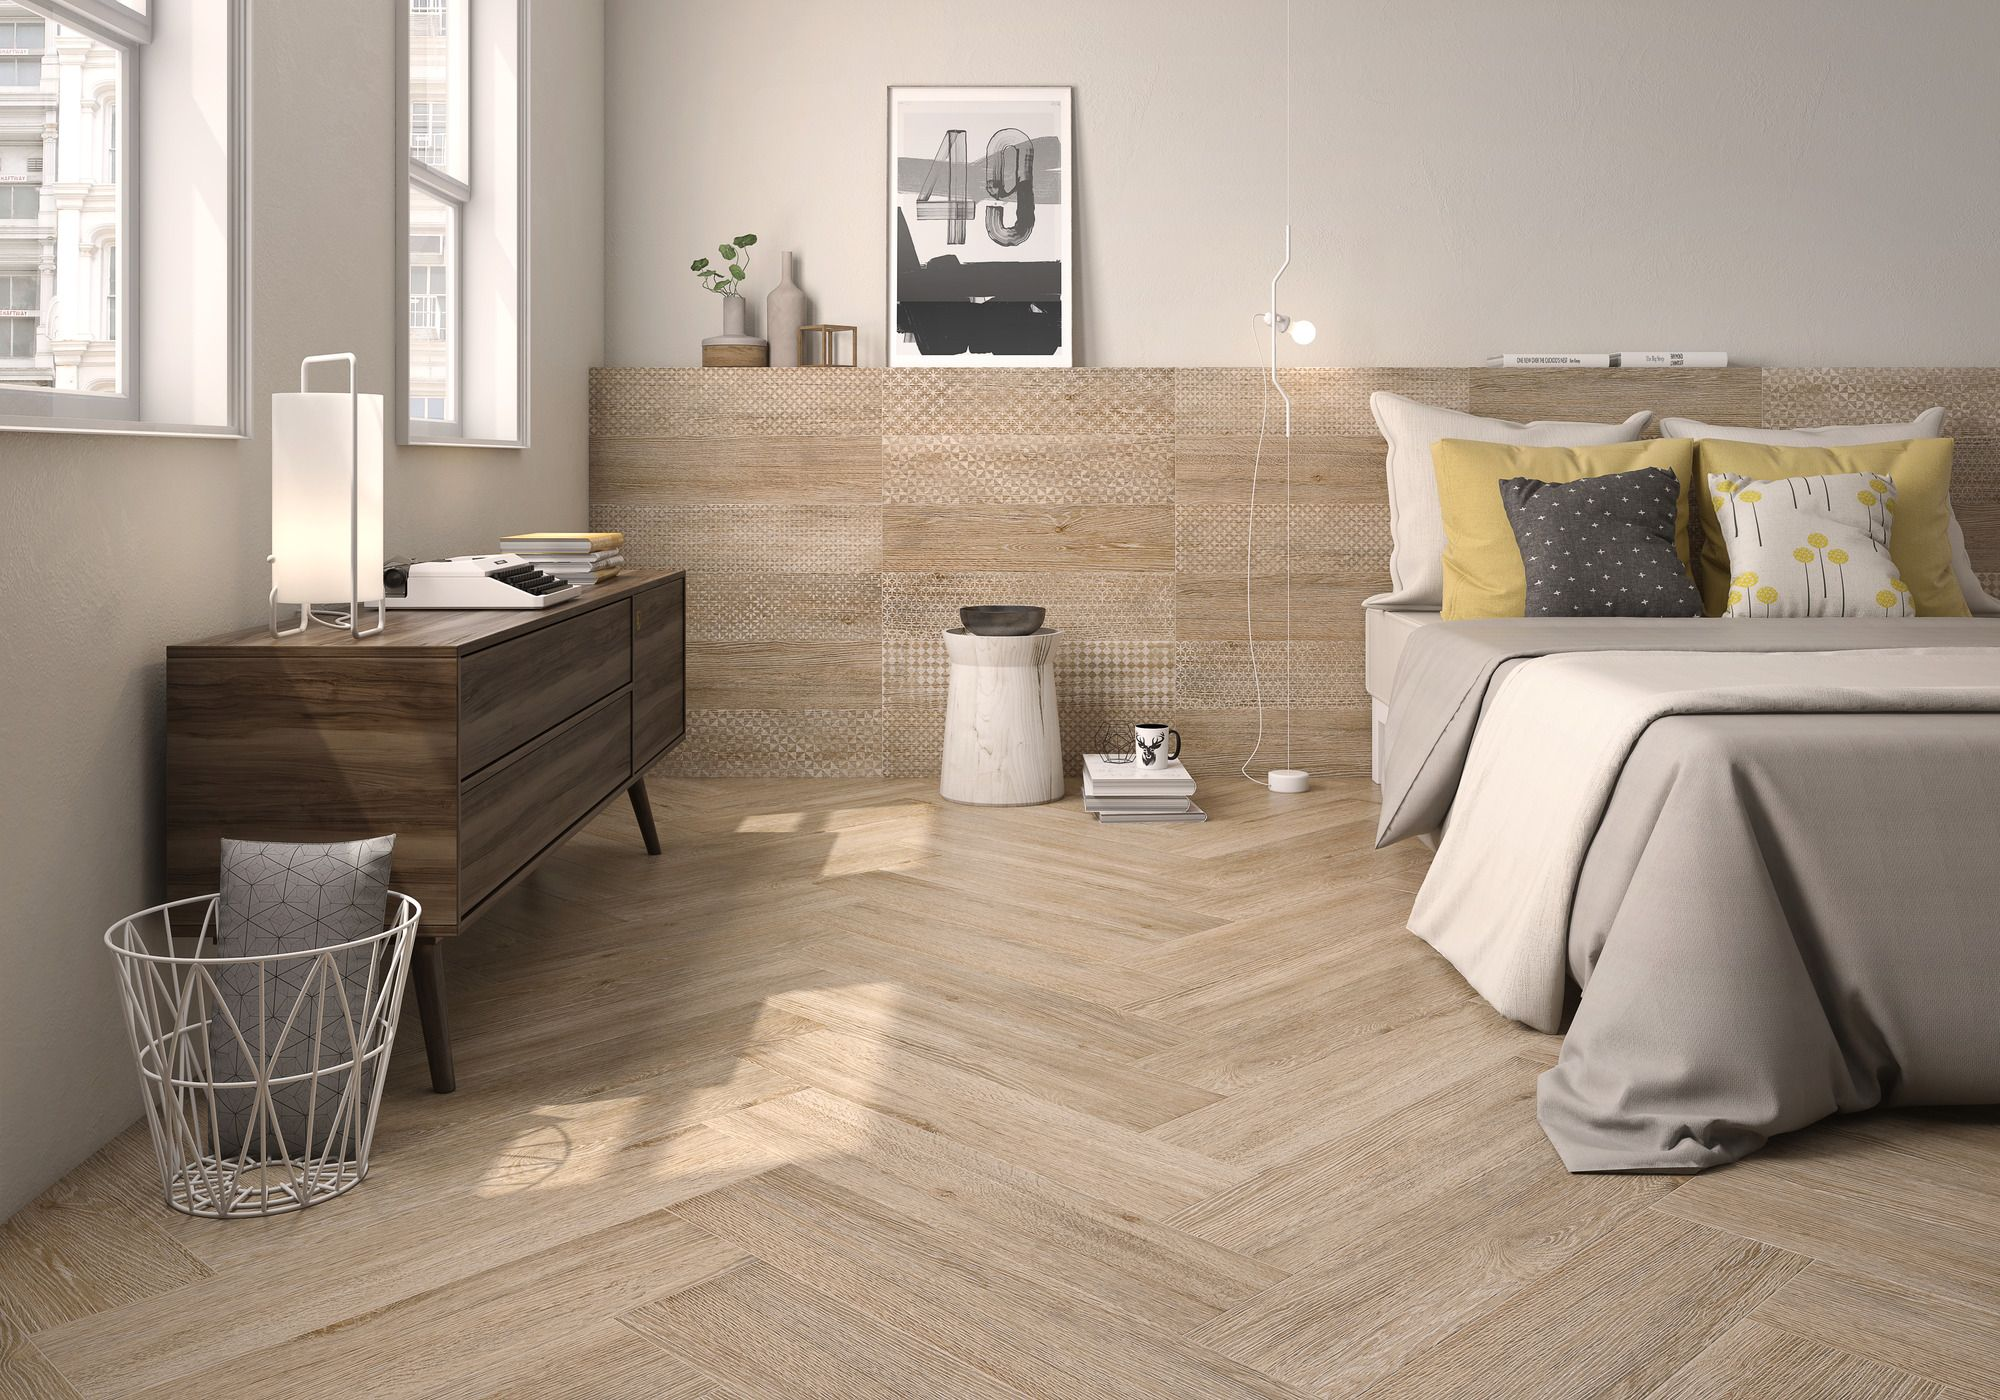 Flamant Collection Wood Facade Ceramic Tiles By Roca Flamant